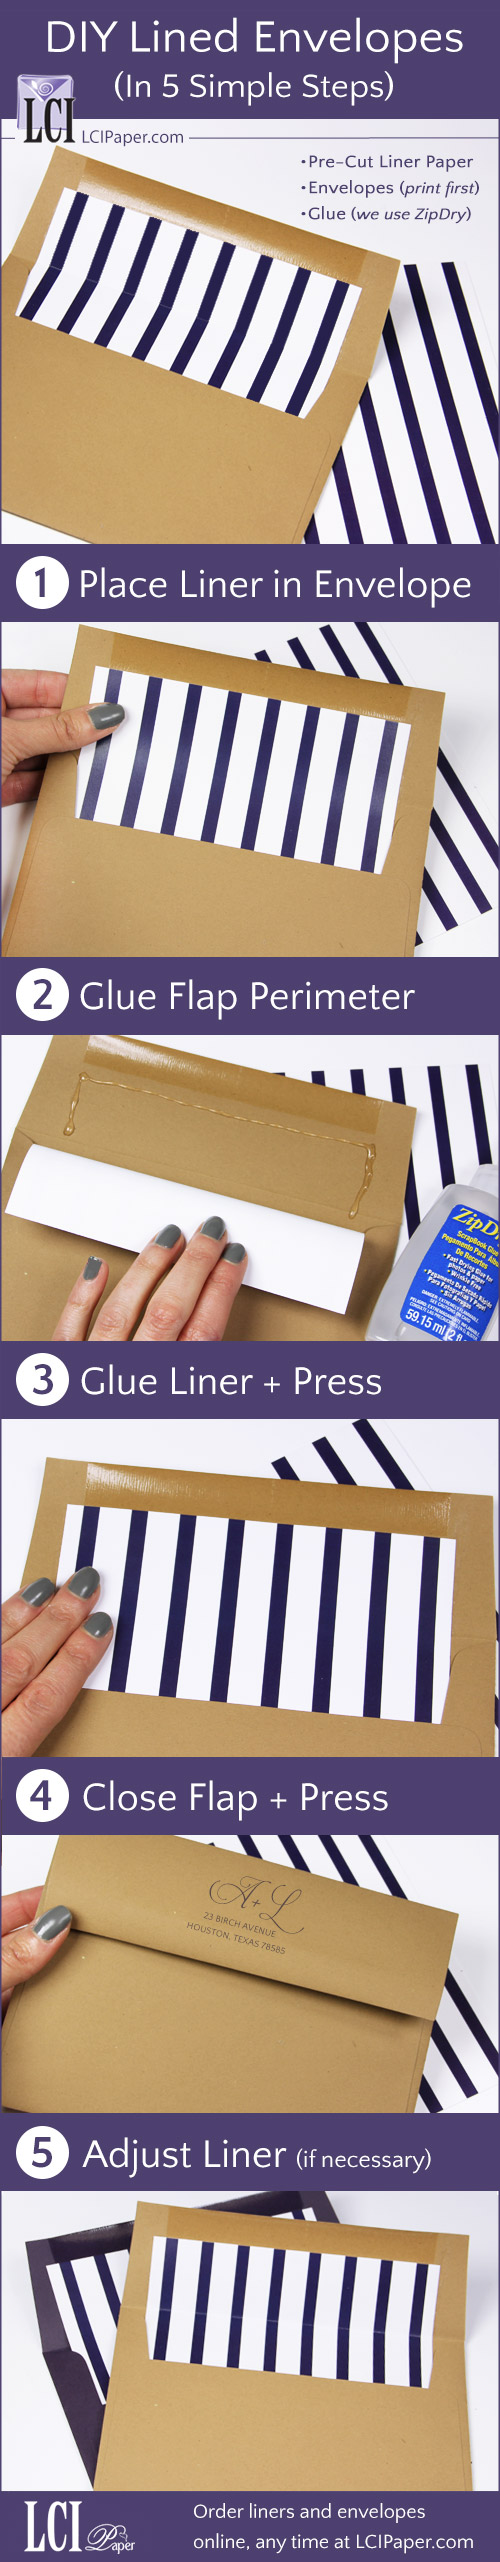 Infographic - line your own envelopes in 5 steps using LCI's printed pre-cut envelope liners